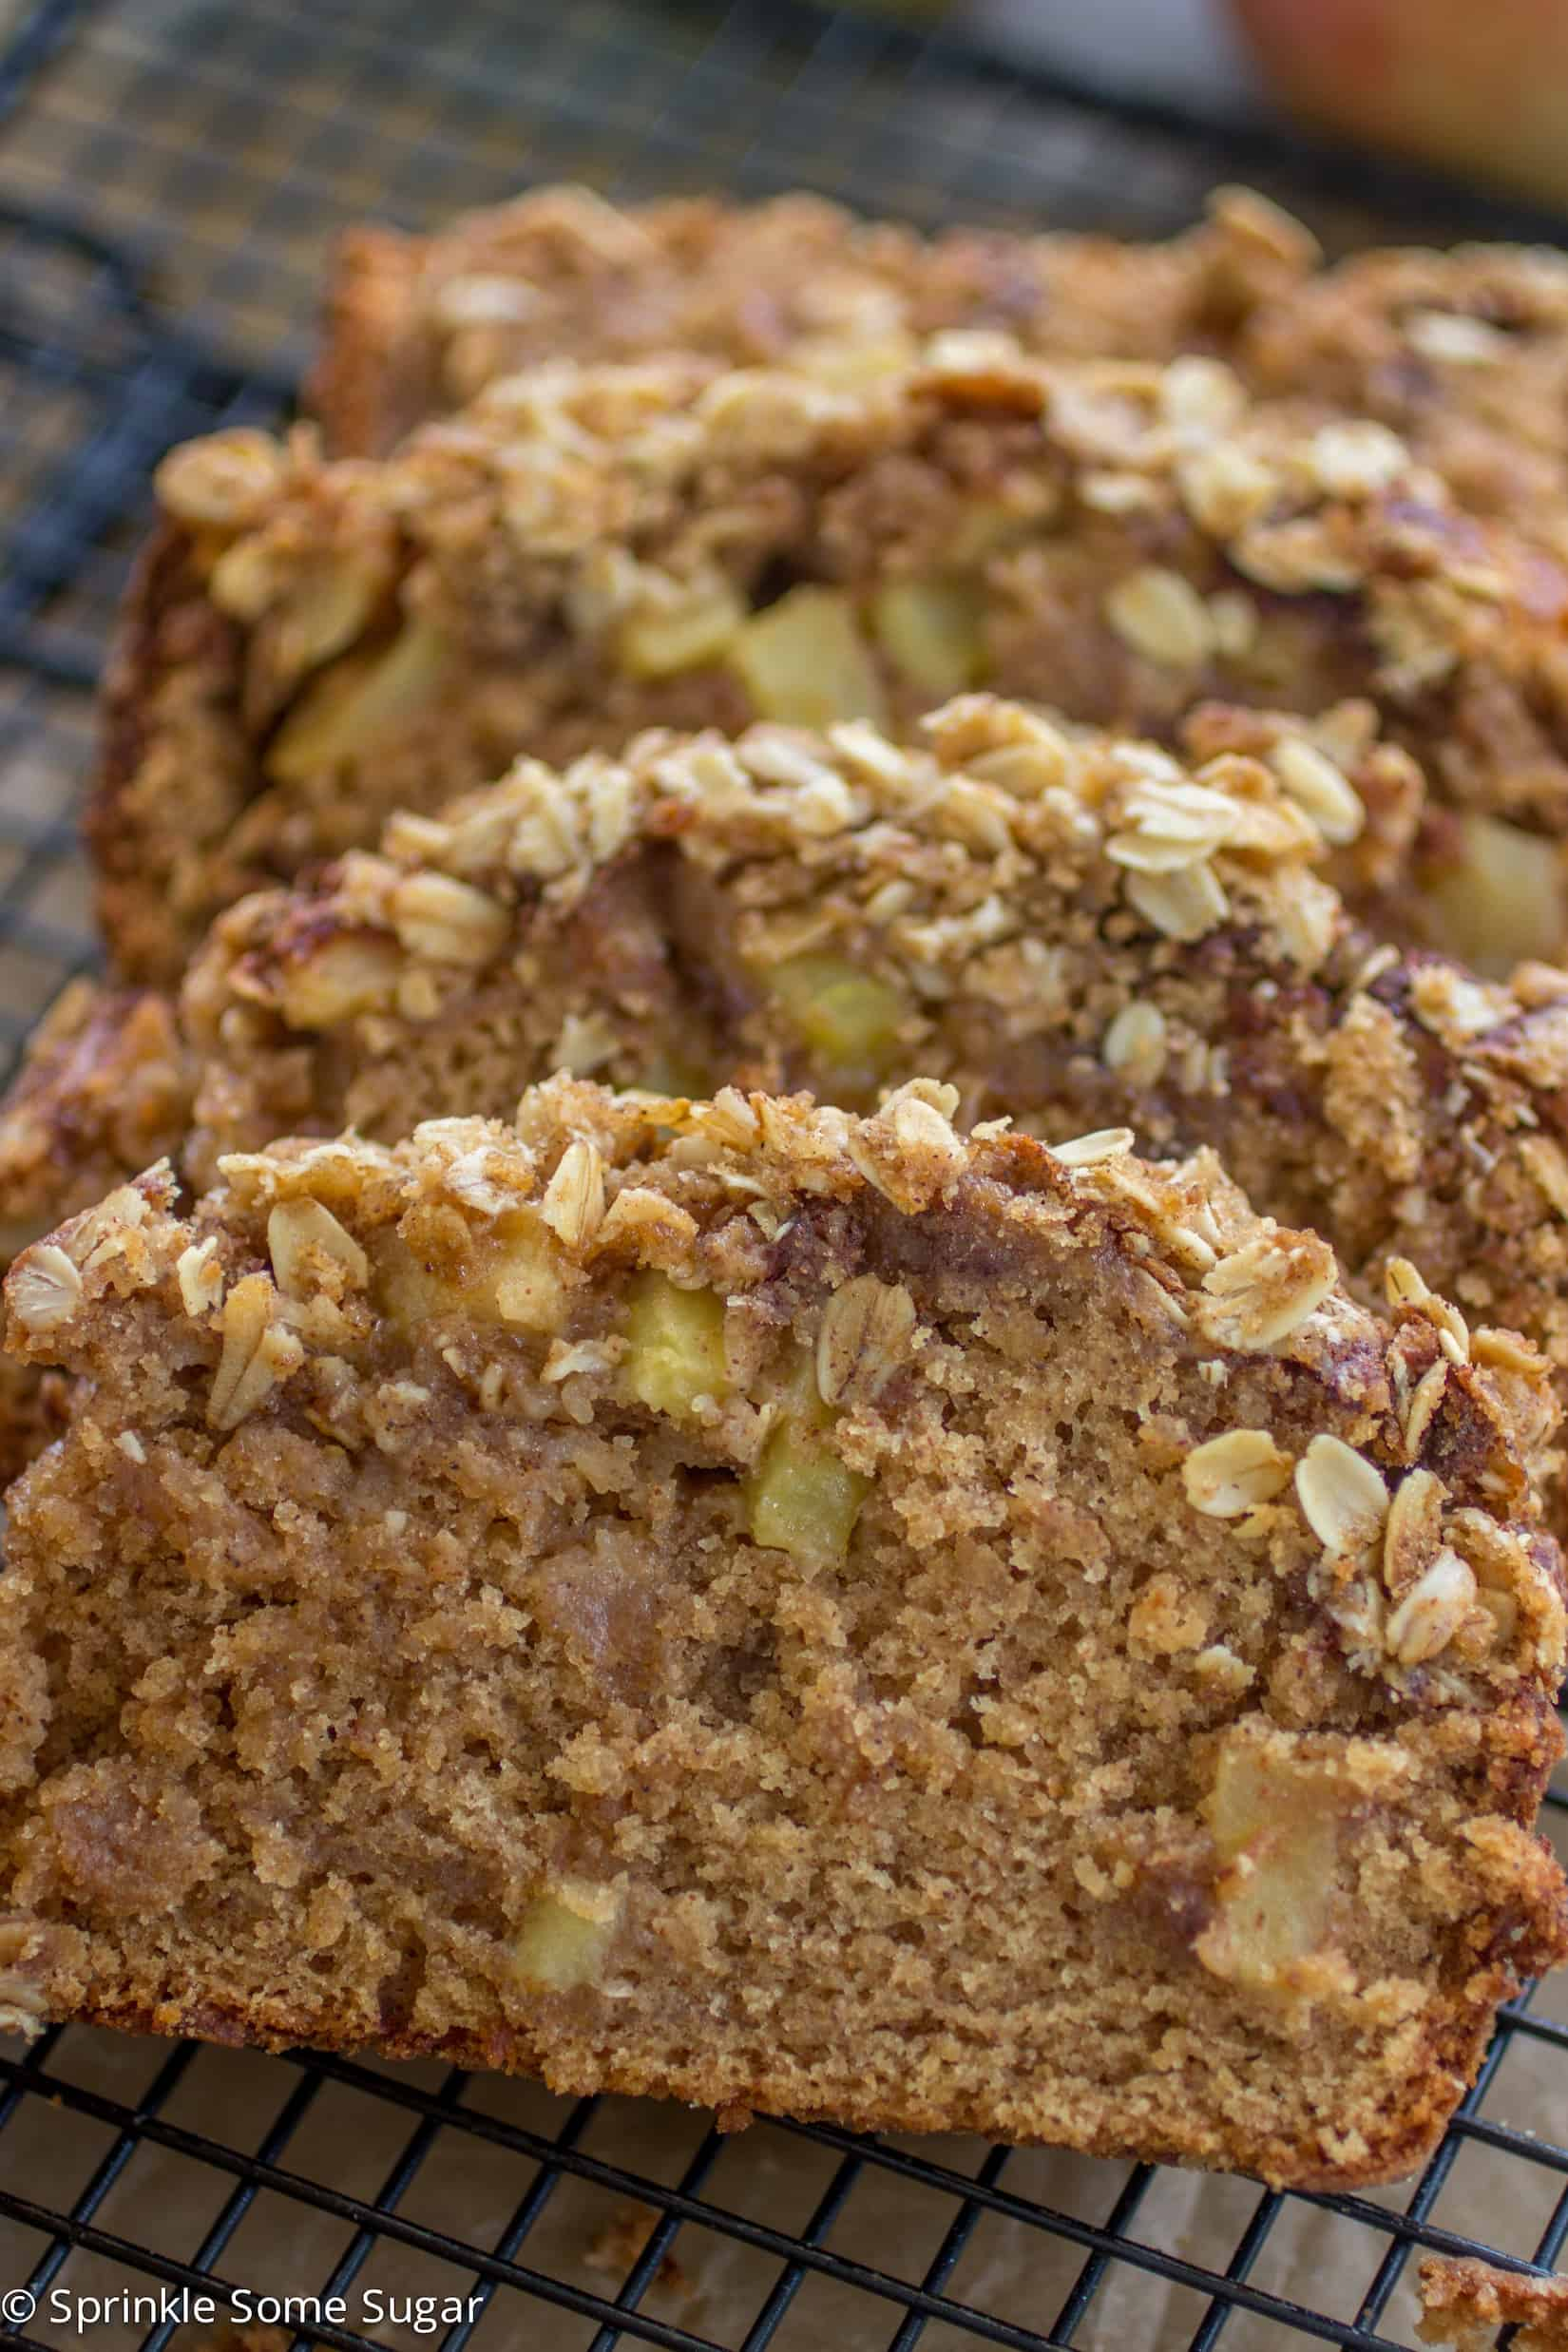 Apple Cinnamon Streusel Bread - The softest bread filled with warm spices, tender apples and topped with a sweet streusel topping.